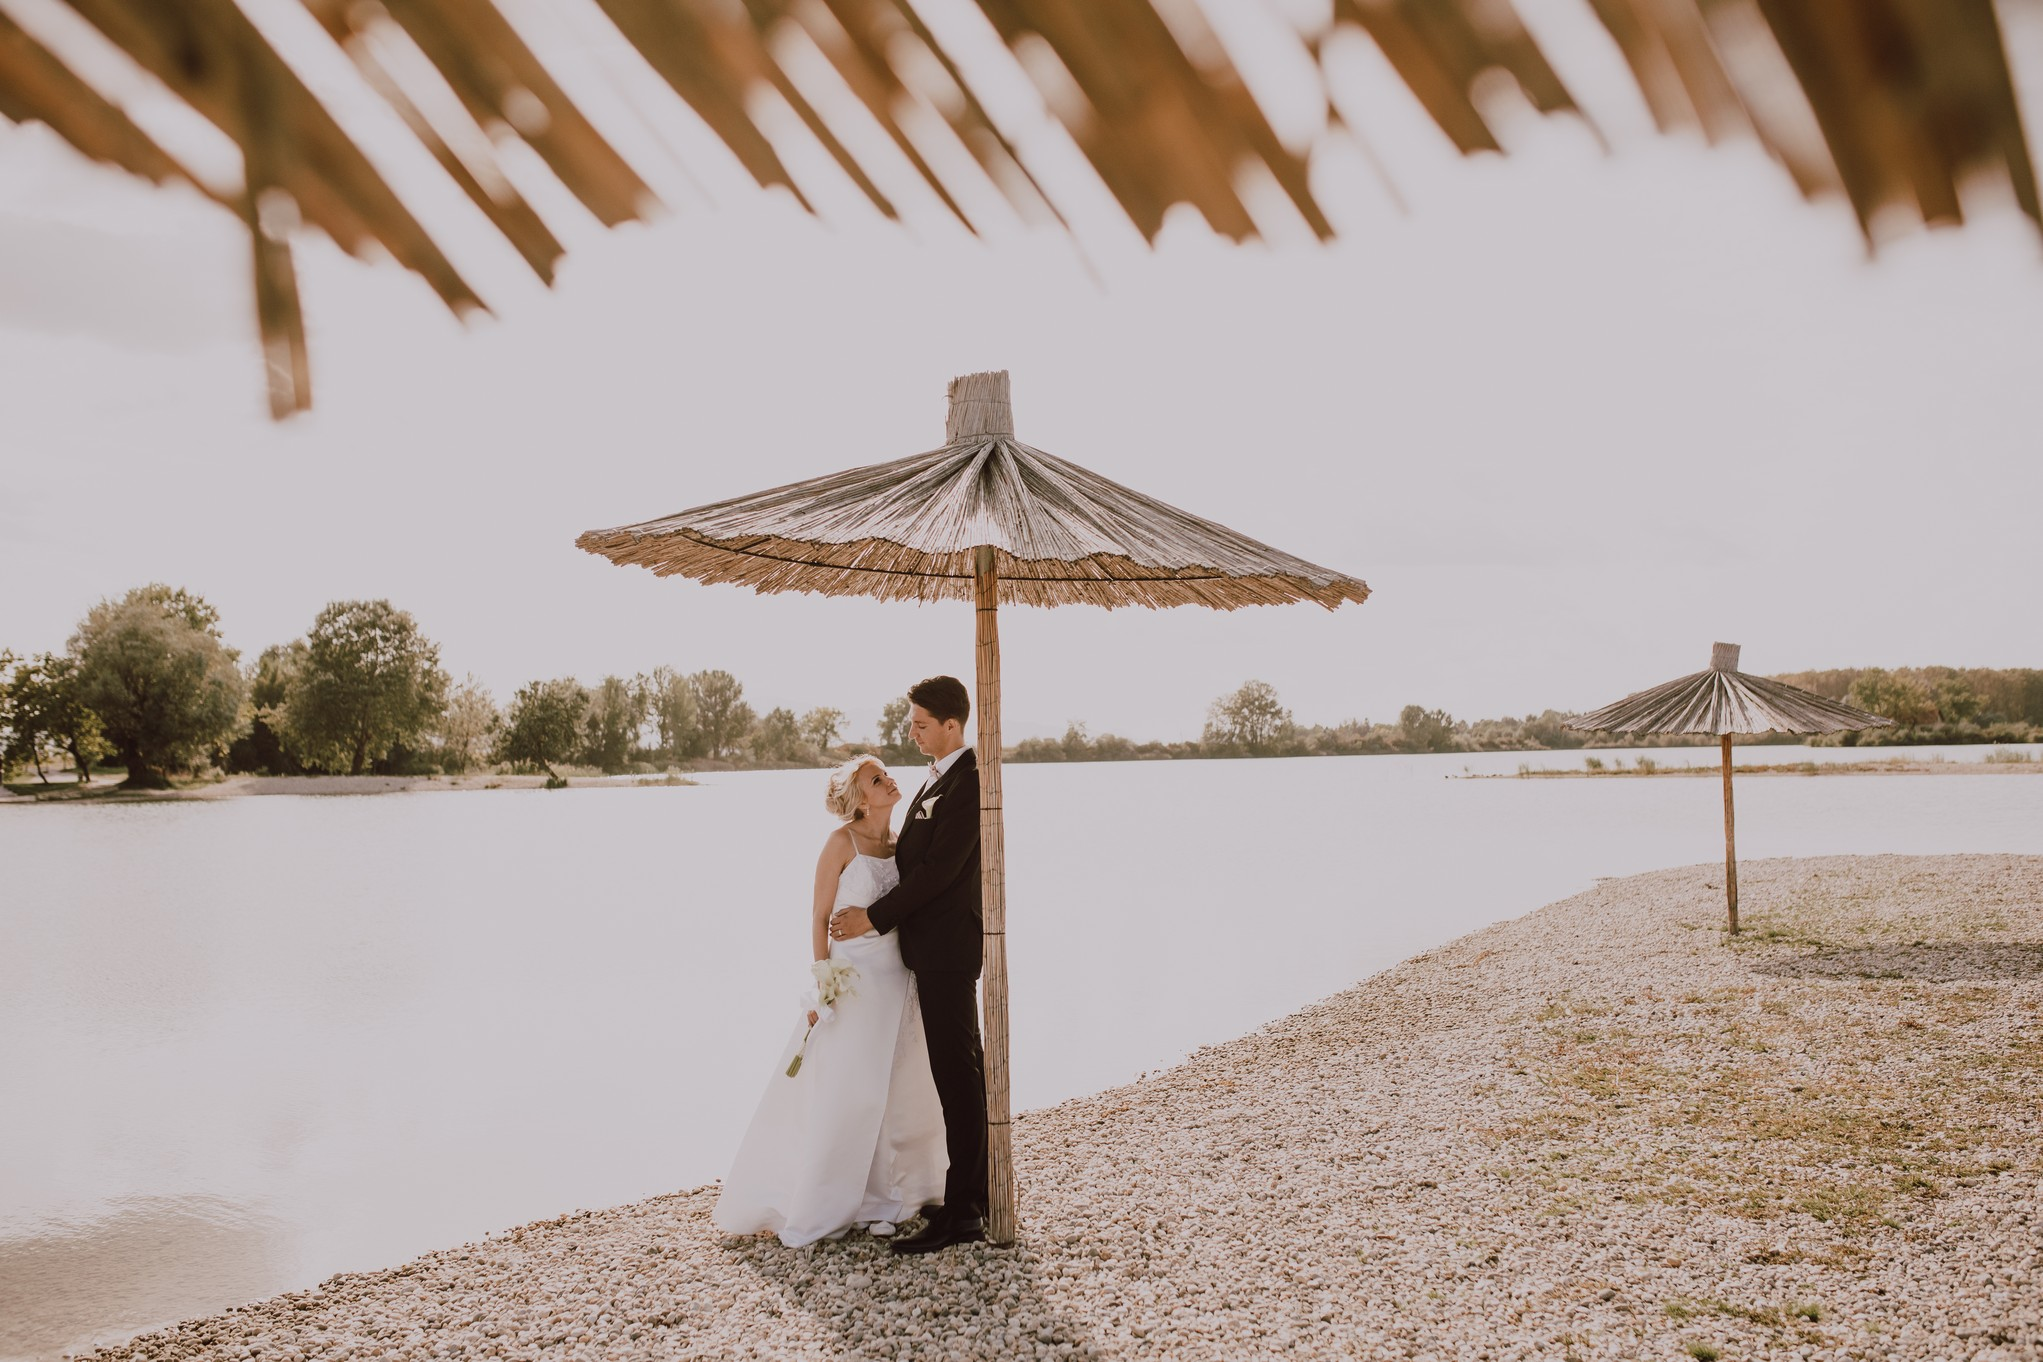 The couple stands by the lake under an umbrella and they look at each other in love